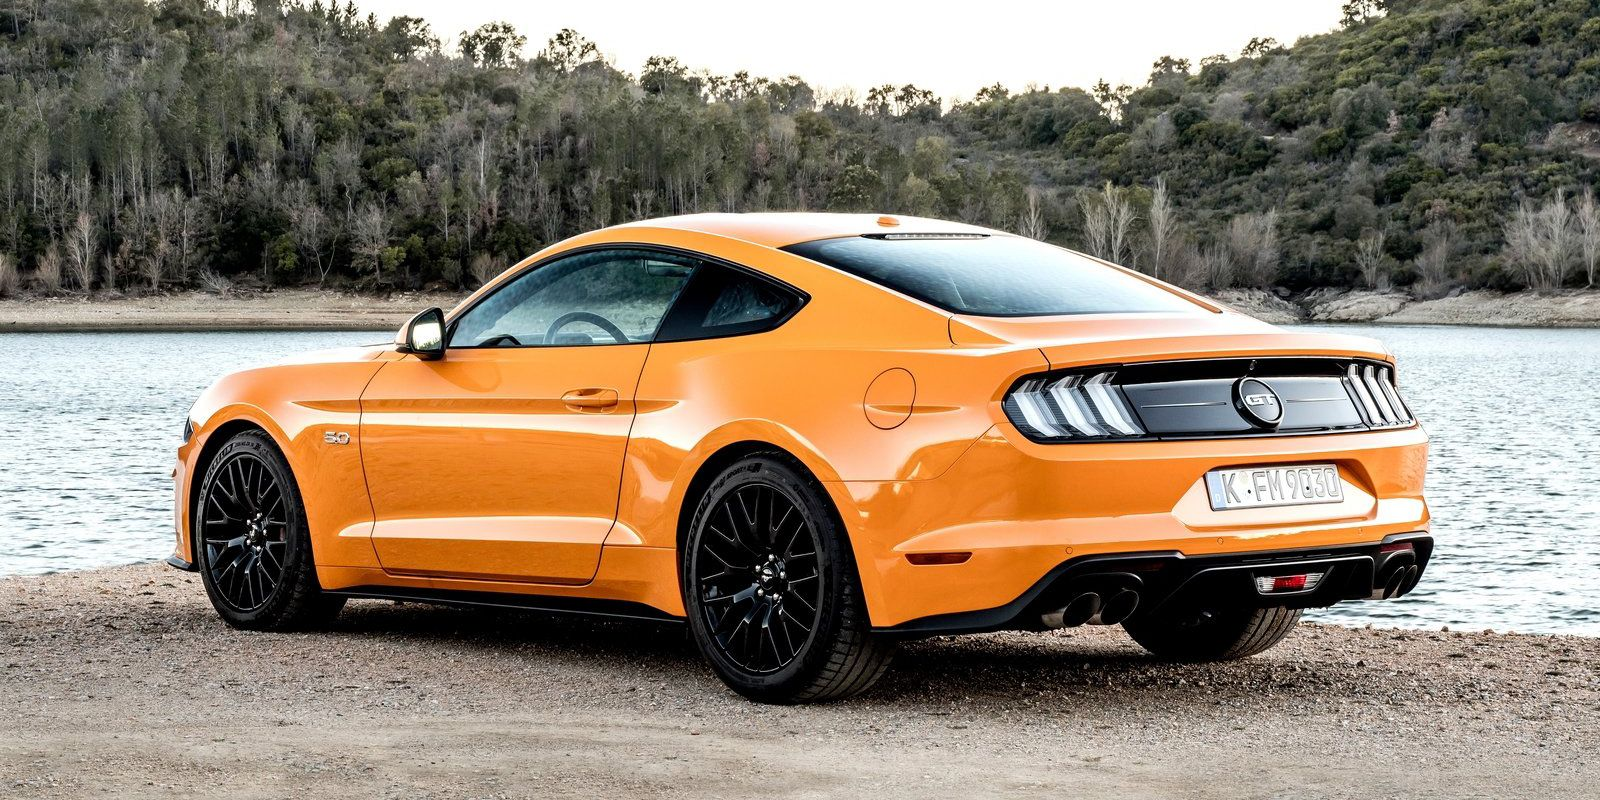 2018 ford mustang gt engine coyote 5 0 v8 specs go back gt gallery for gt 2000 mustang v6 engine diagram [ 1600 x 800 Pixel ]